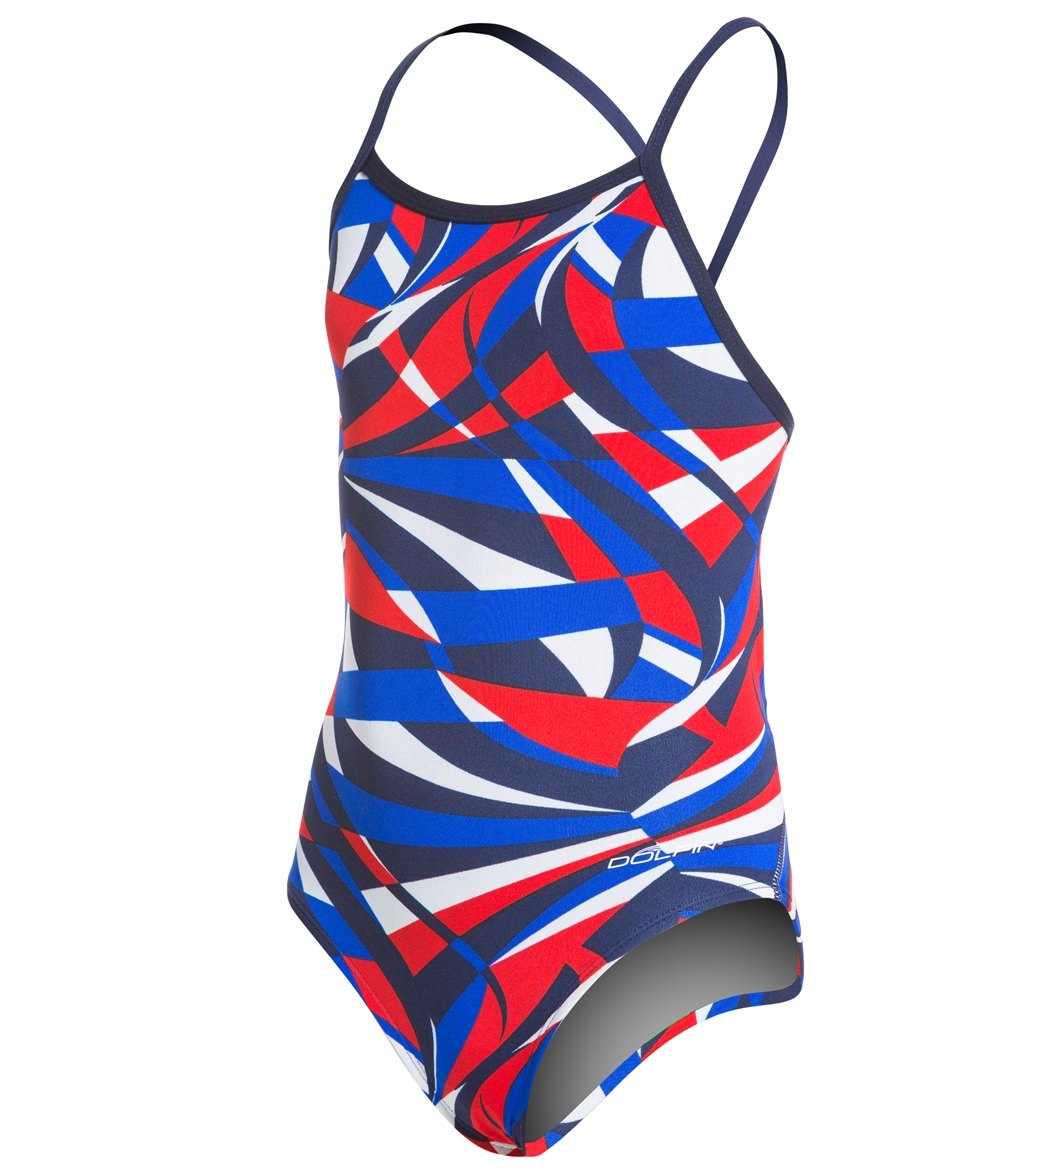 Dolfin Viper Youth V Back One Piece Swimsuit At Swimoutlet